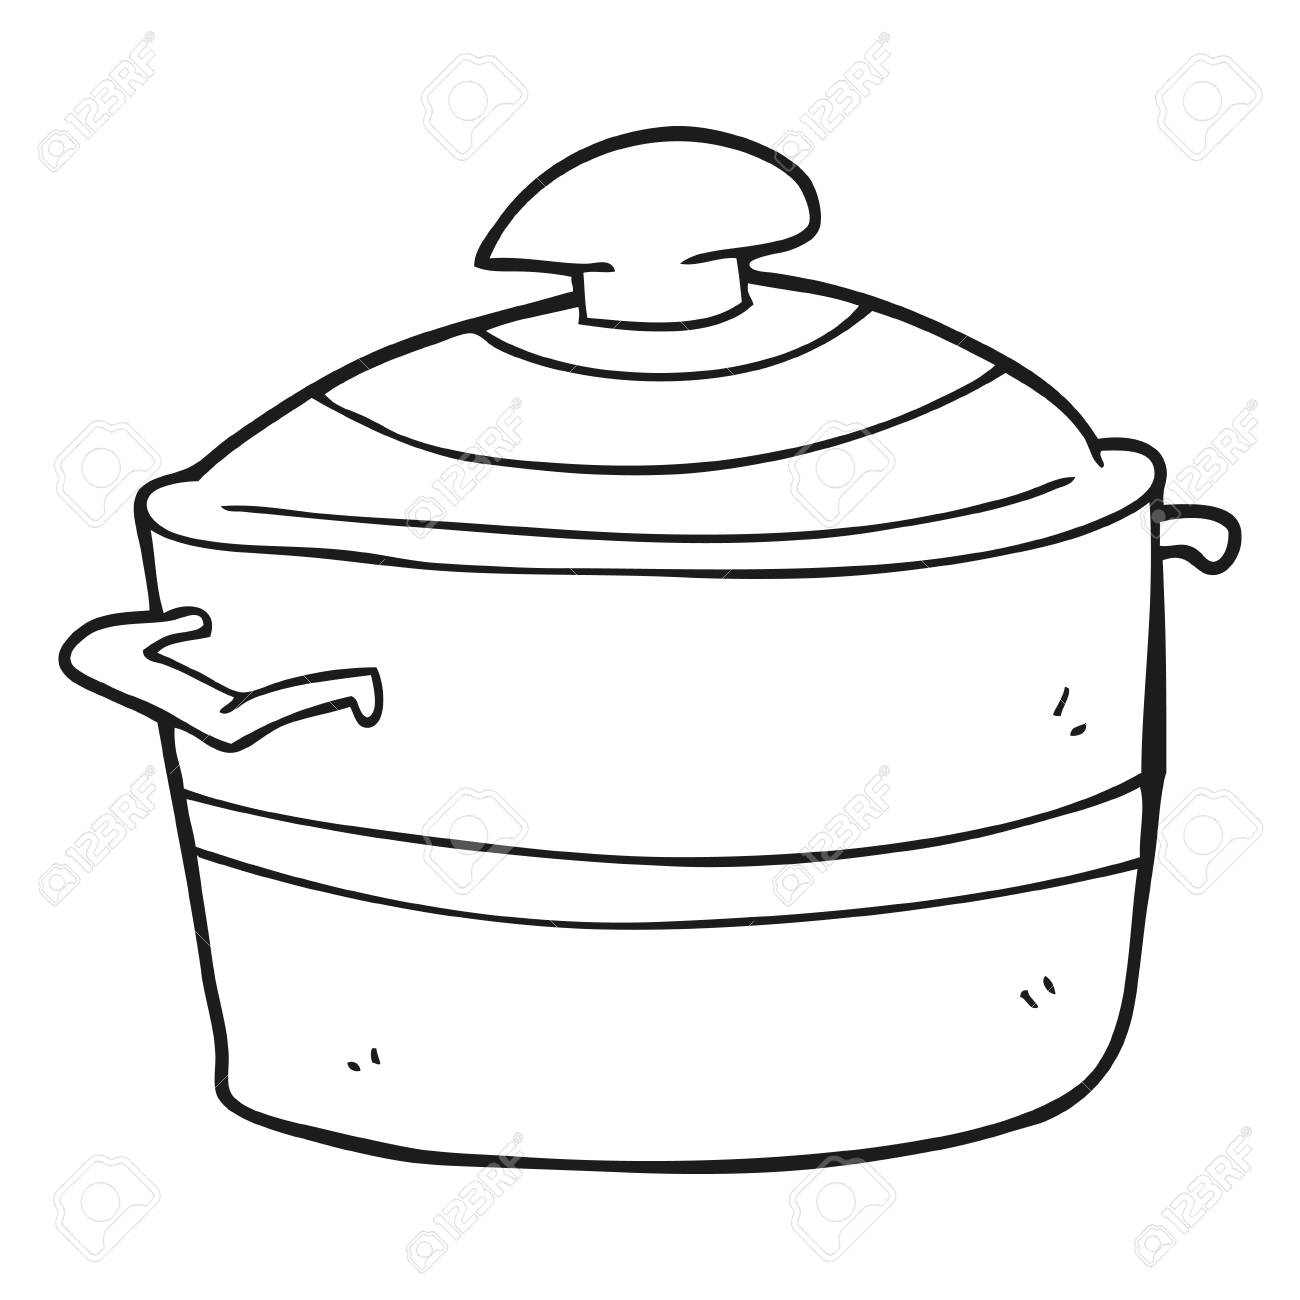 Freehand Drawn Black And White Cartoon Cooking Pot Royalty Free Cliparts Vectors And Stock Illustration Image 53192952